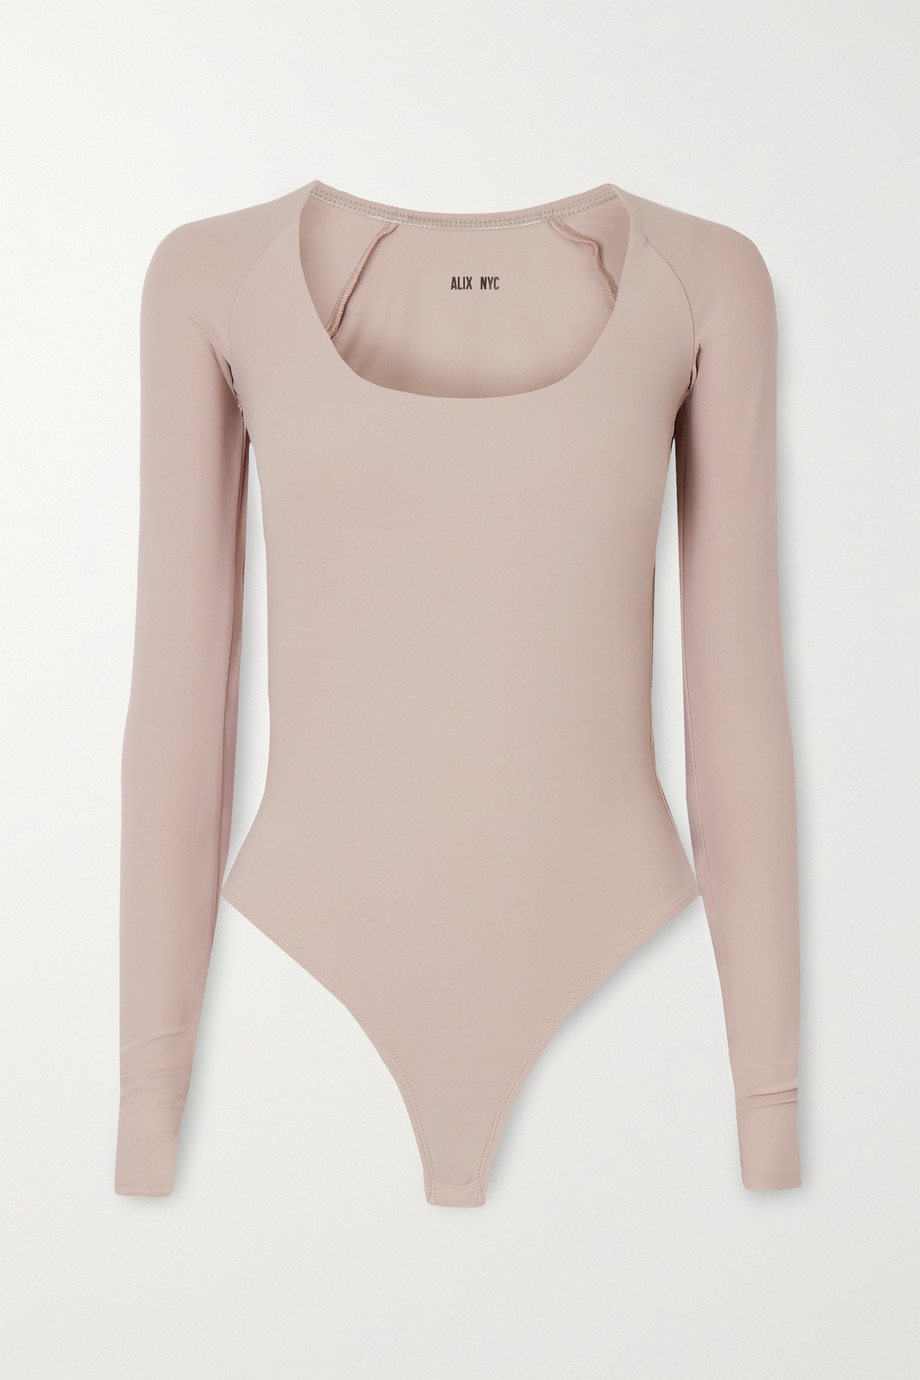 Alix NYC Sullivan String-Body aus Stretch-Jersey